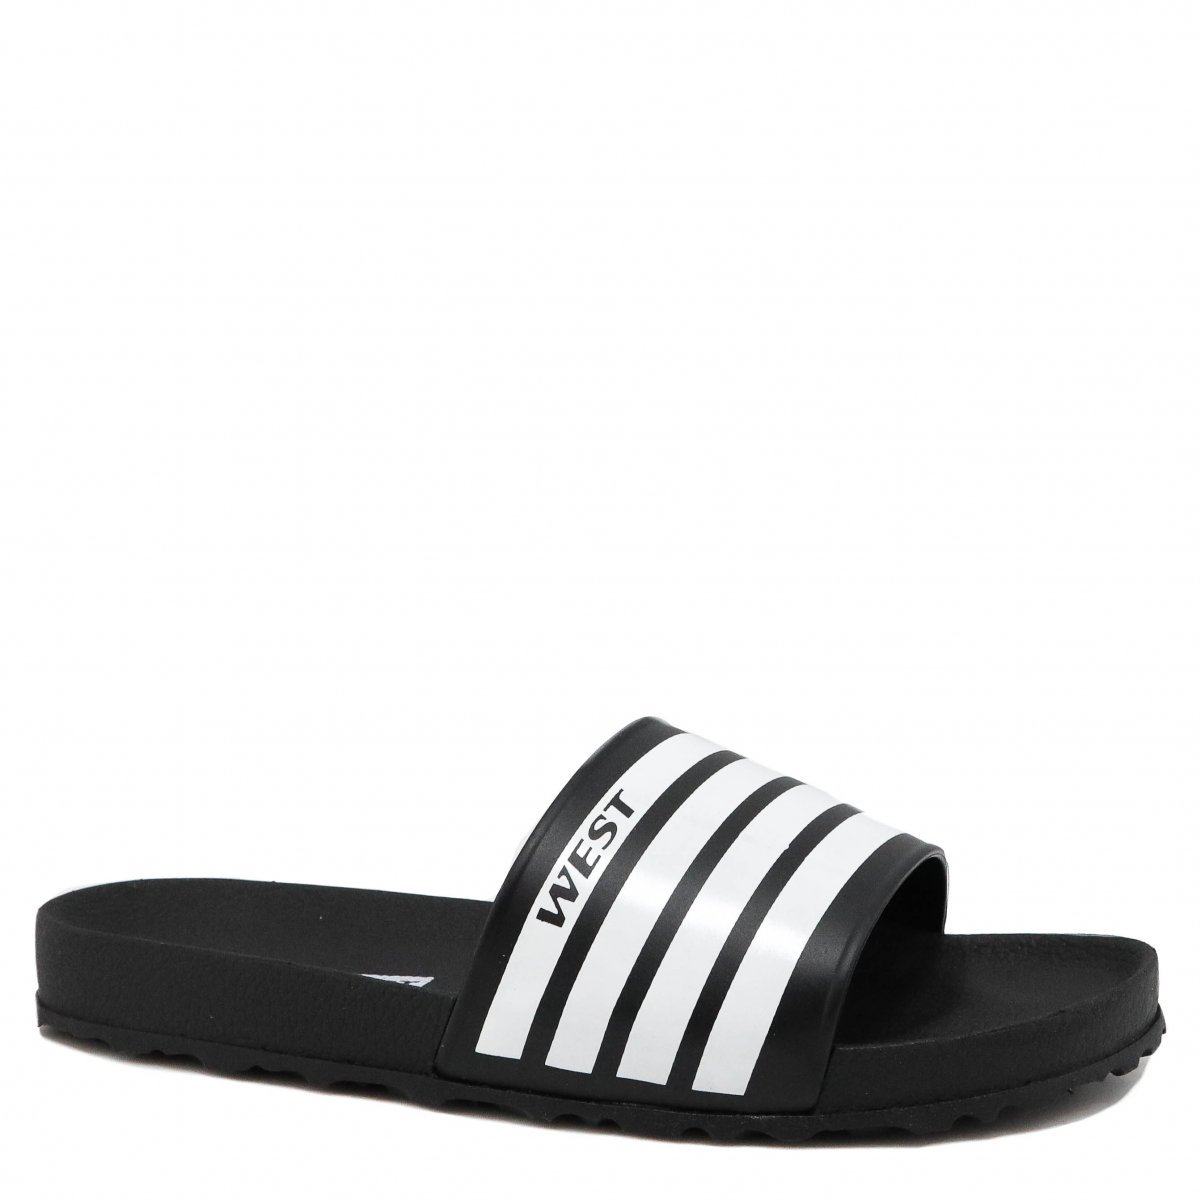 Chinelo West Coast Slide Zuma Preto